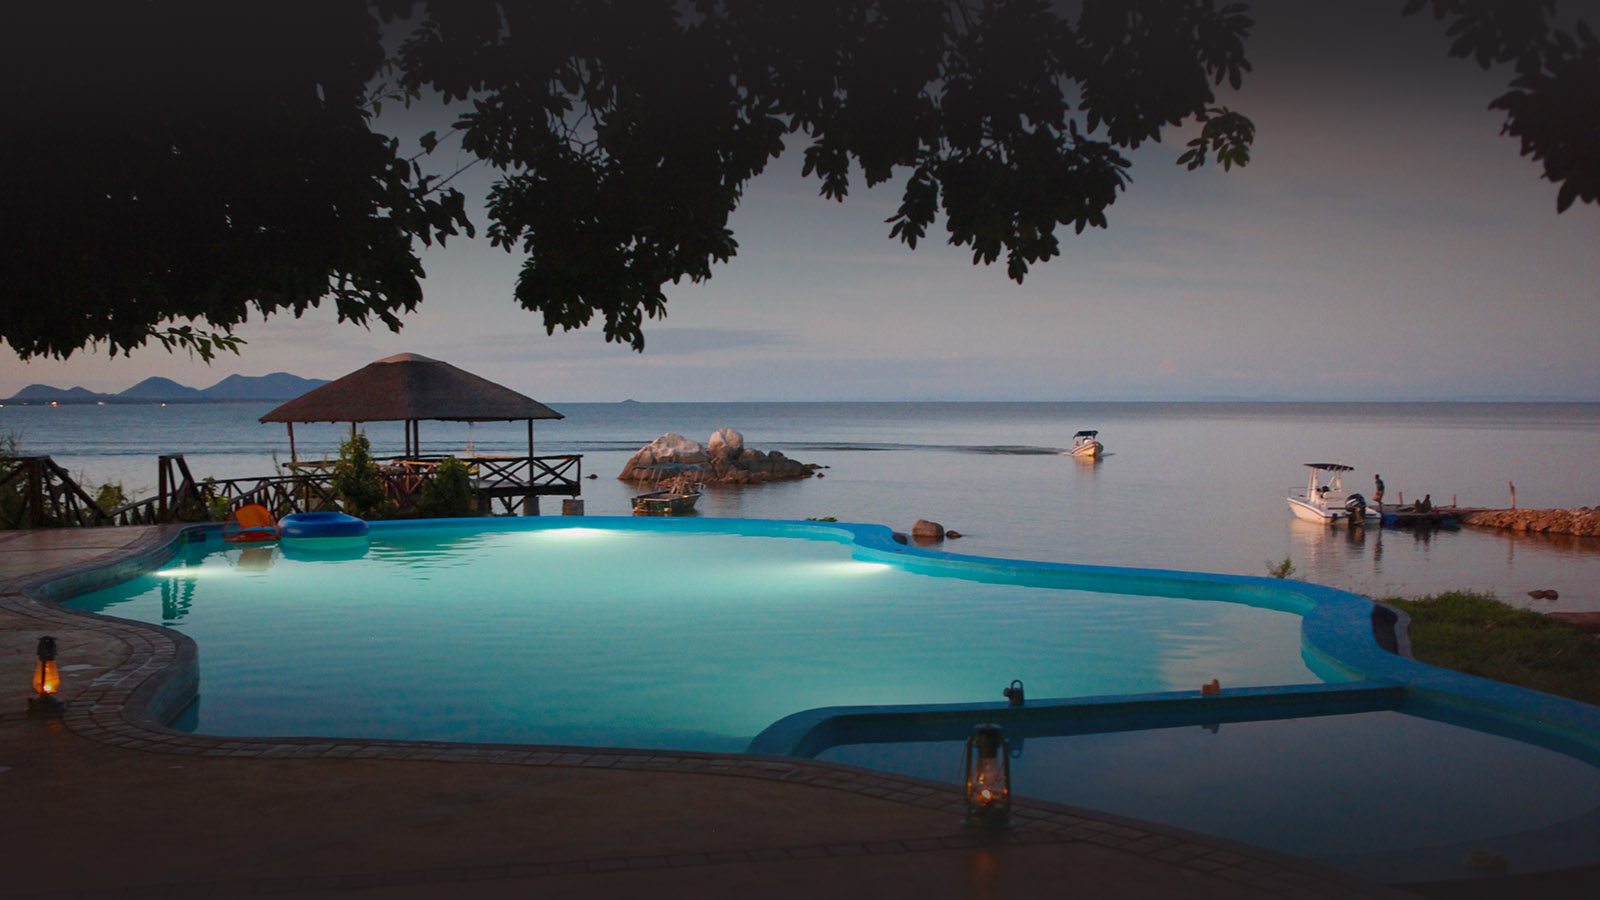 rps-green-season-walk-zambia-in-style-safari-packages-tours-infinity-pool